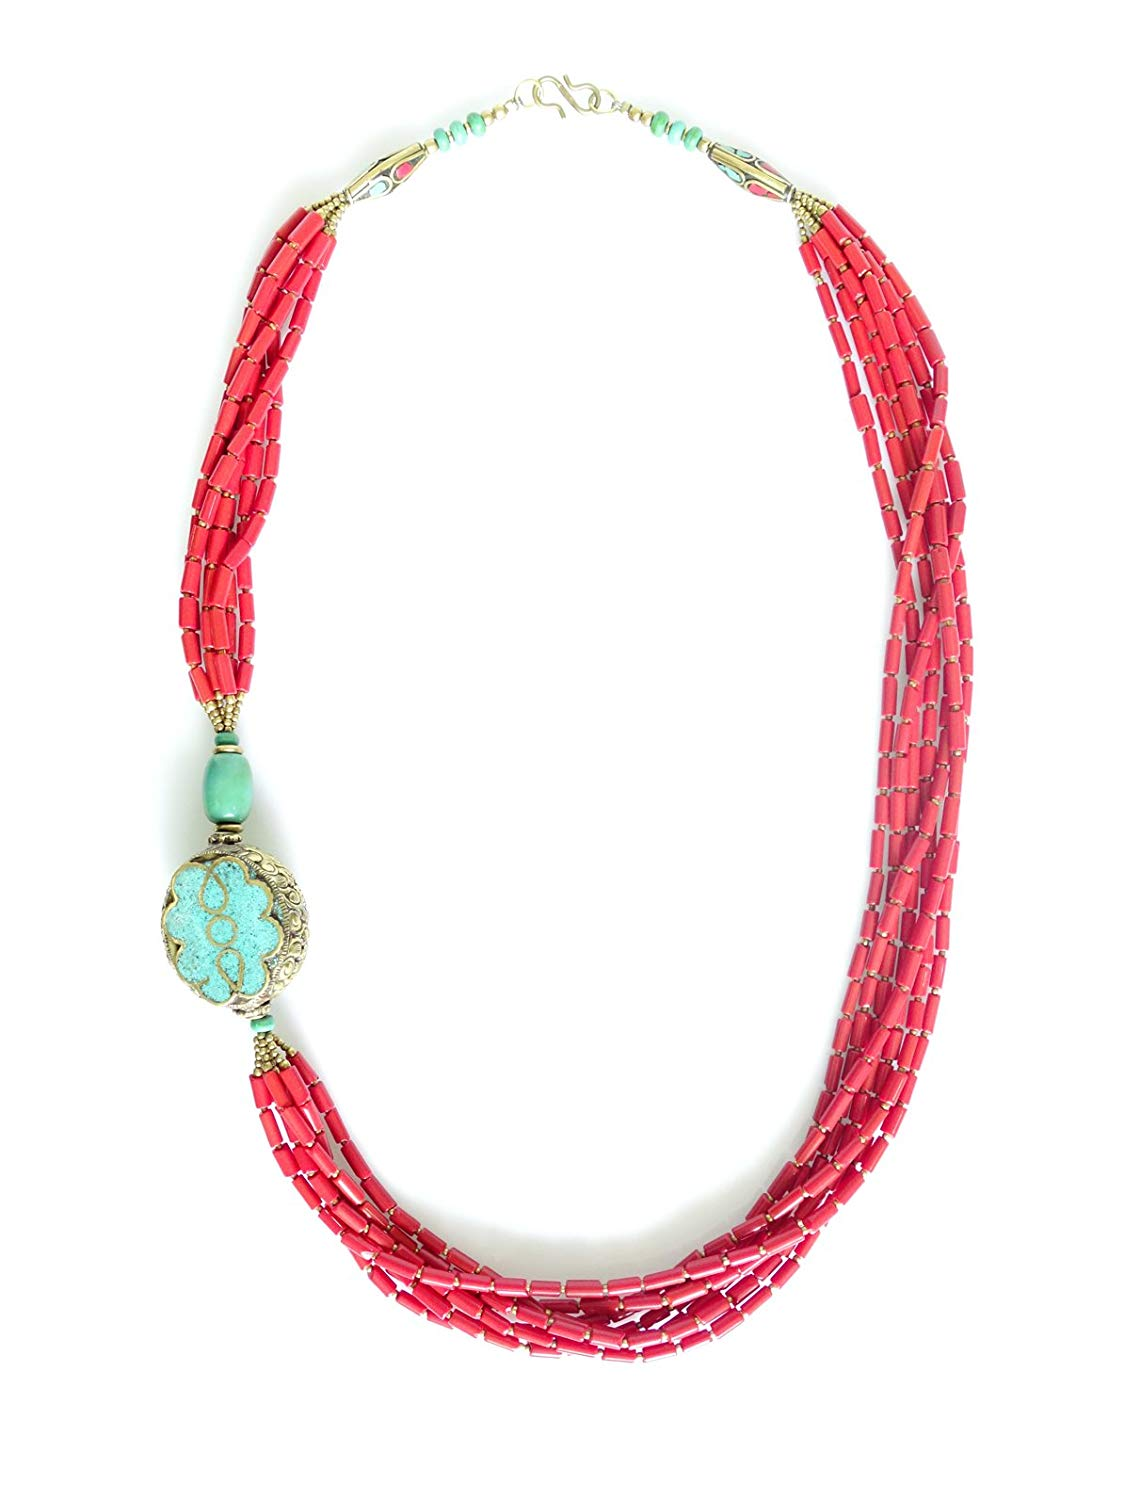 Tibetan Silver FABULOUS HAND KNOTTED FASHION REVERSIBLE NECKLACE LONG MULTI STRAND CORAL GEMSTONE BEADED NECKLACE UNIQUE DESIGNER TRIBAL GYPSY HANDMADE FASHION JEWELRY WOMEN YOUNG GIRLS